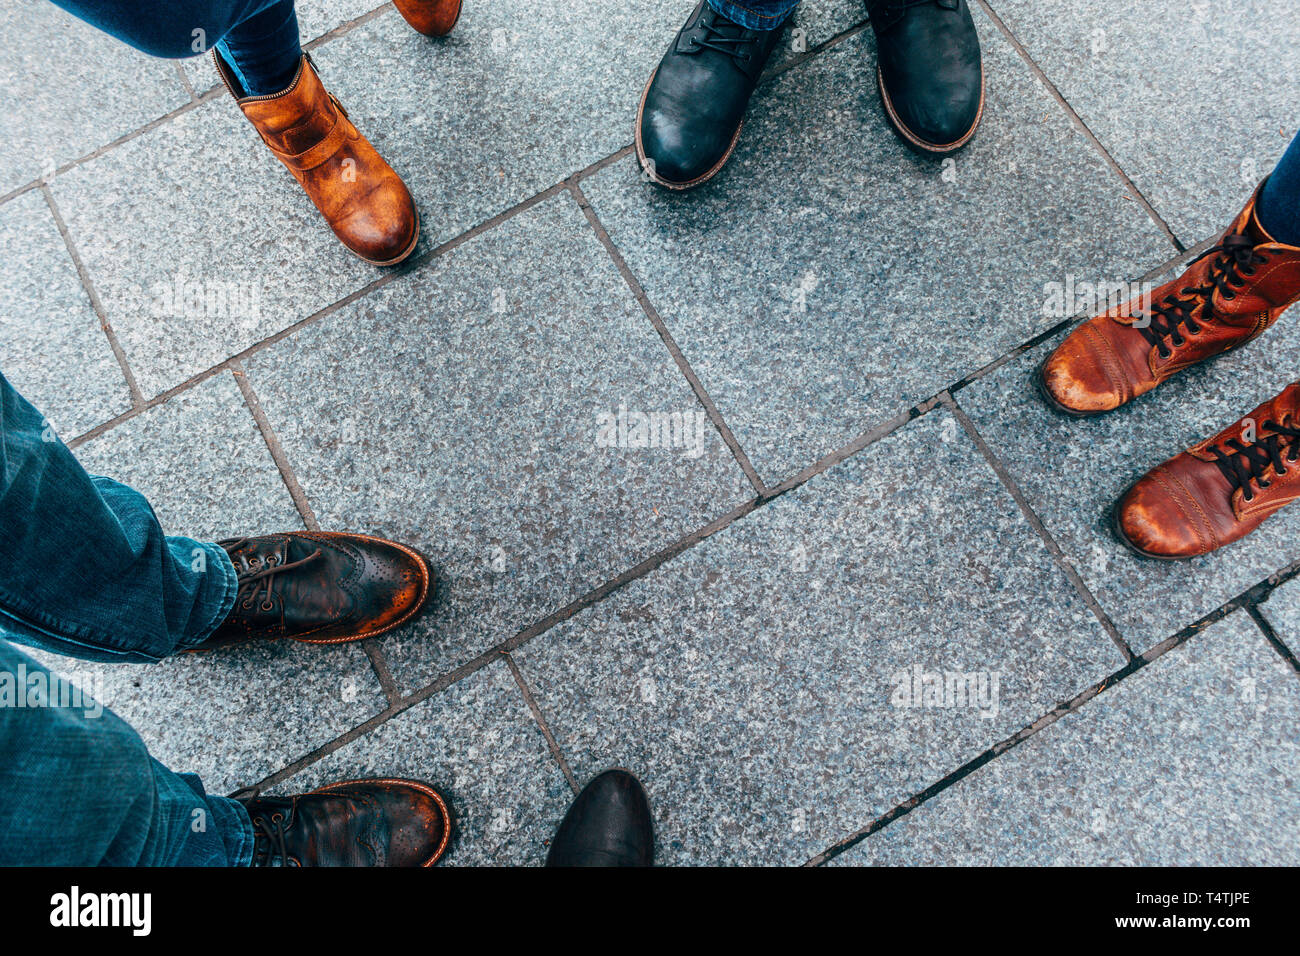 Worn out shoes on sidewalk - Stock Image